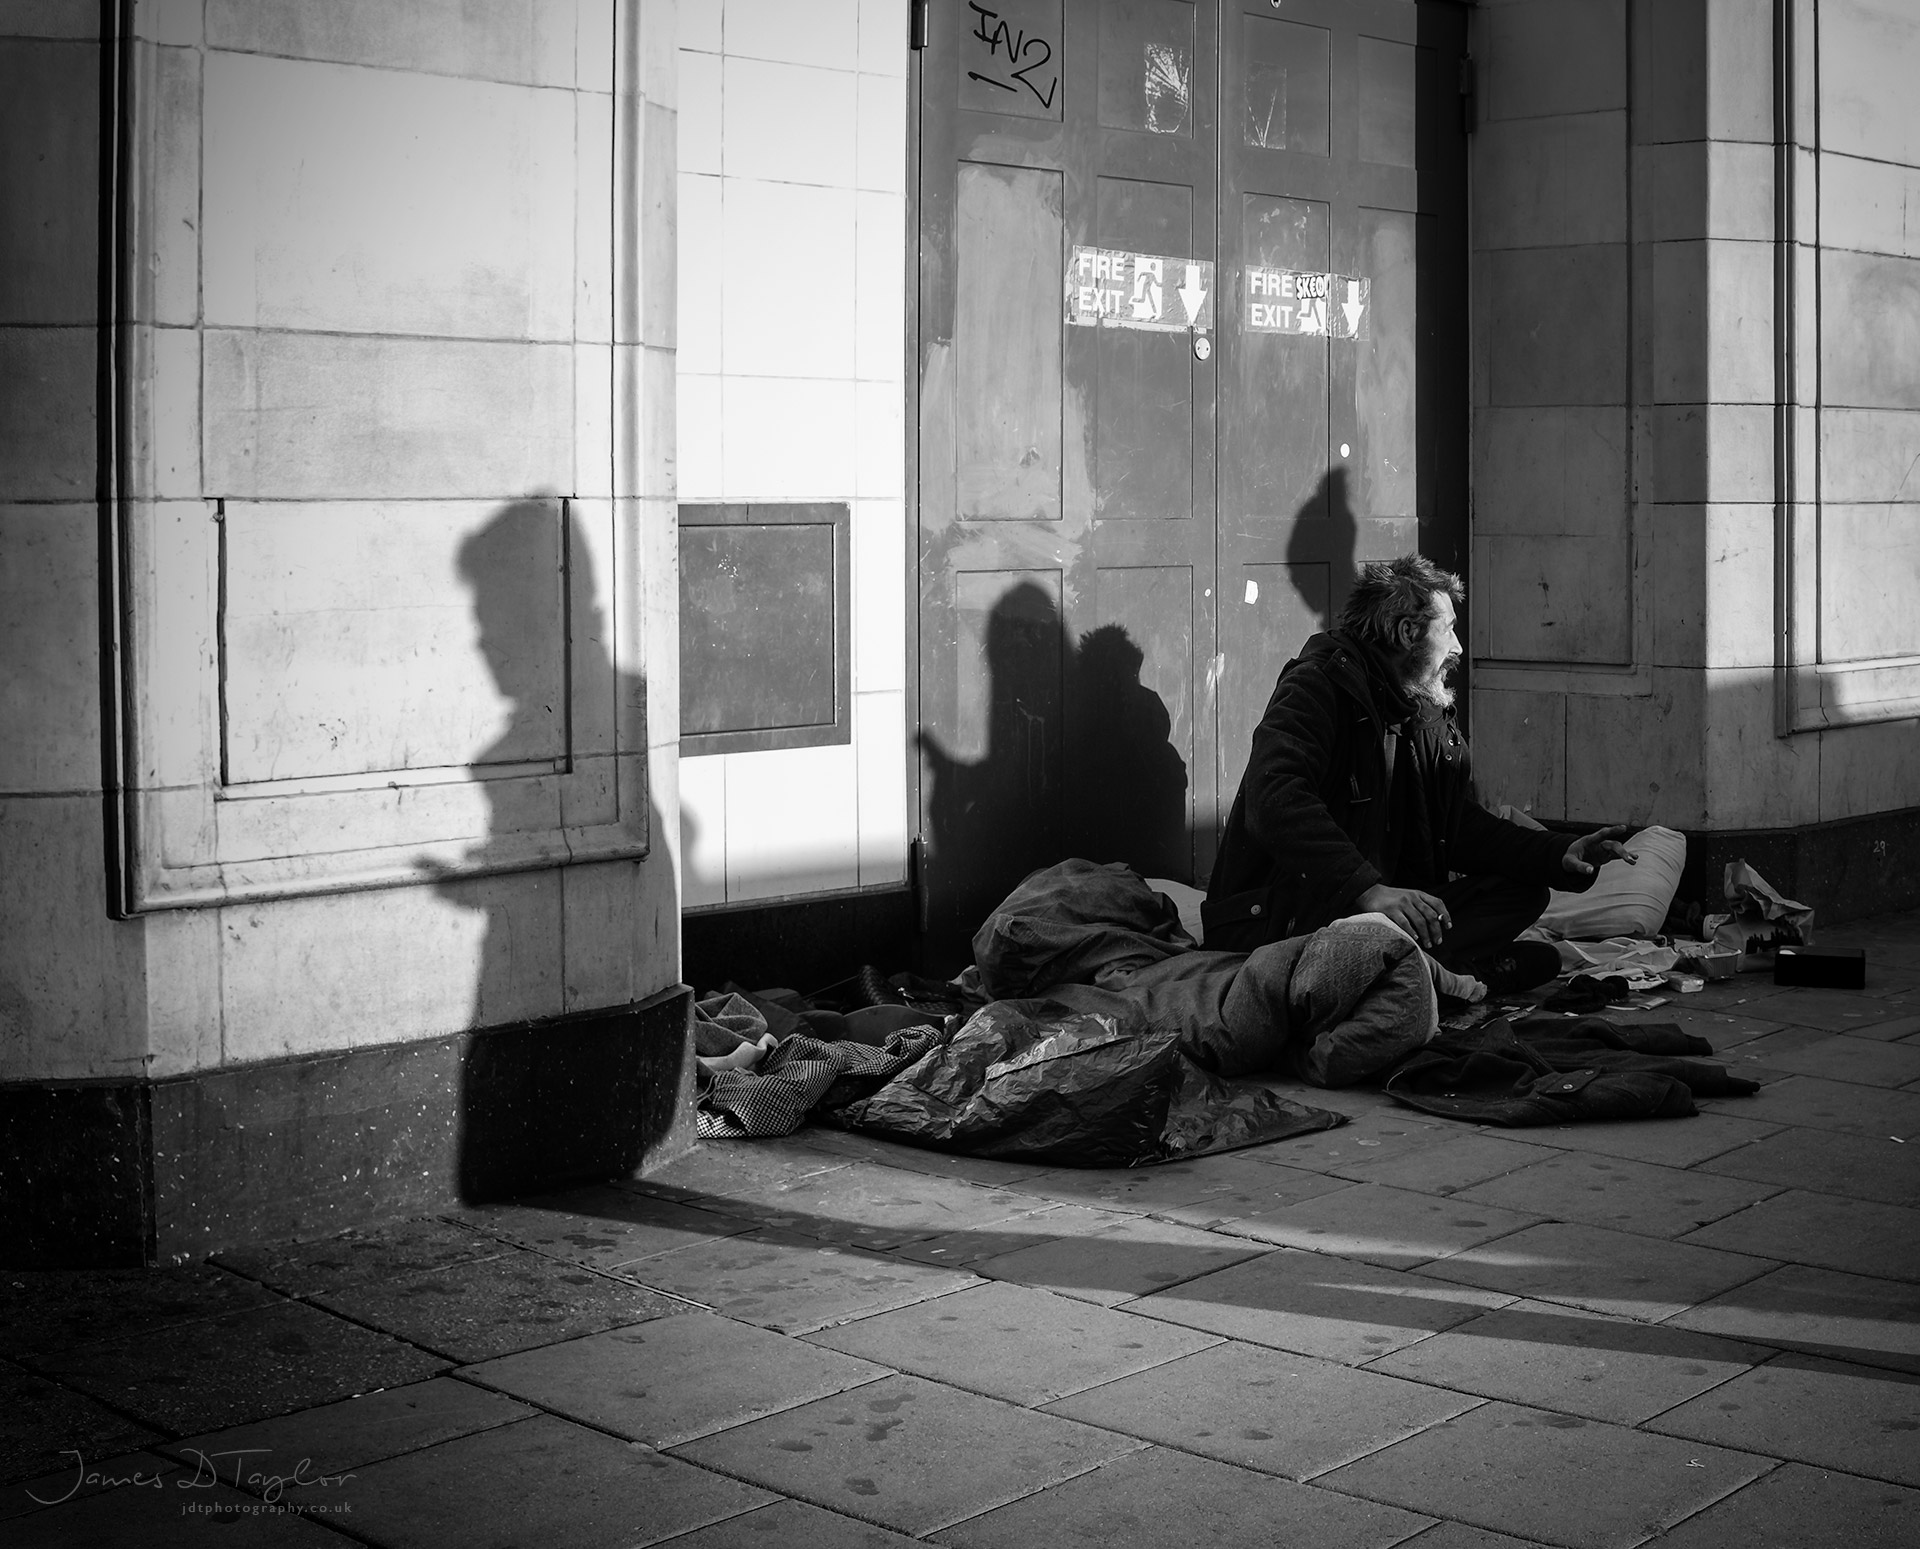 urban_bnw_homeless_man_oxfrod_st_london